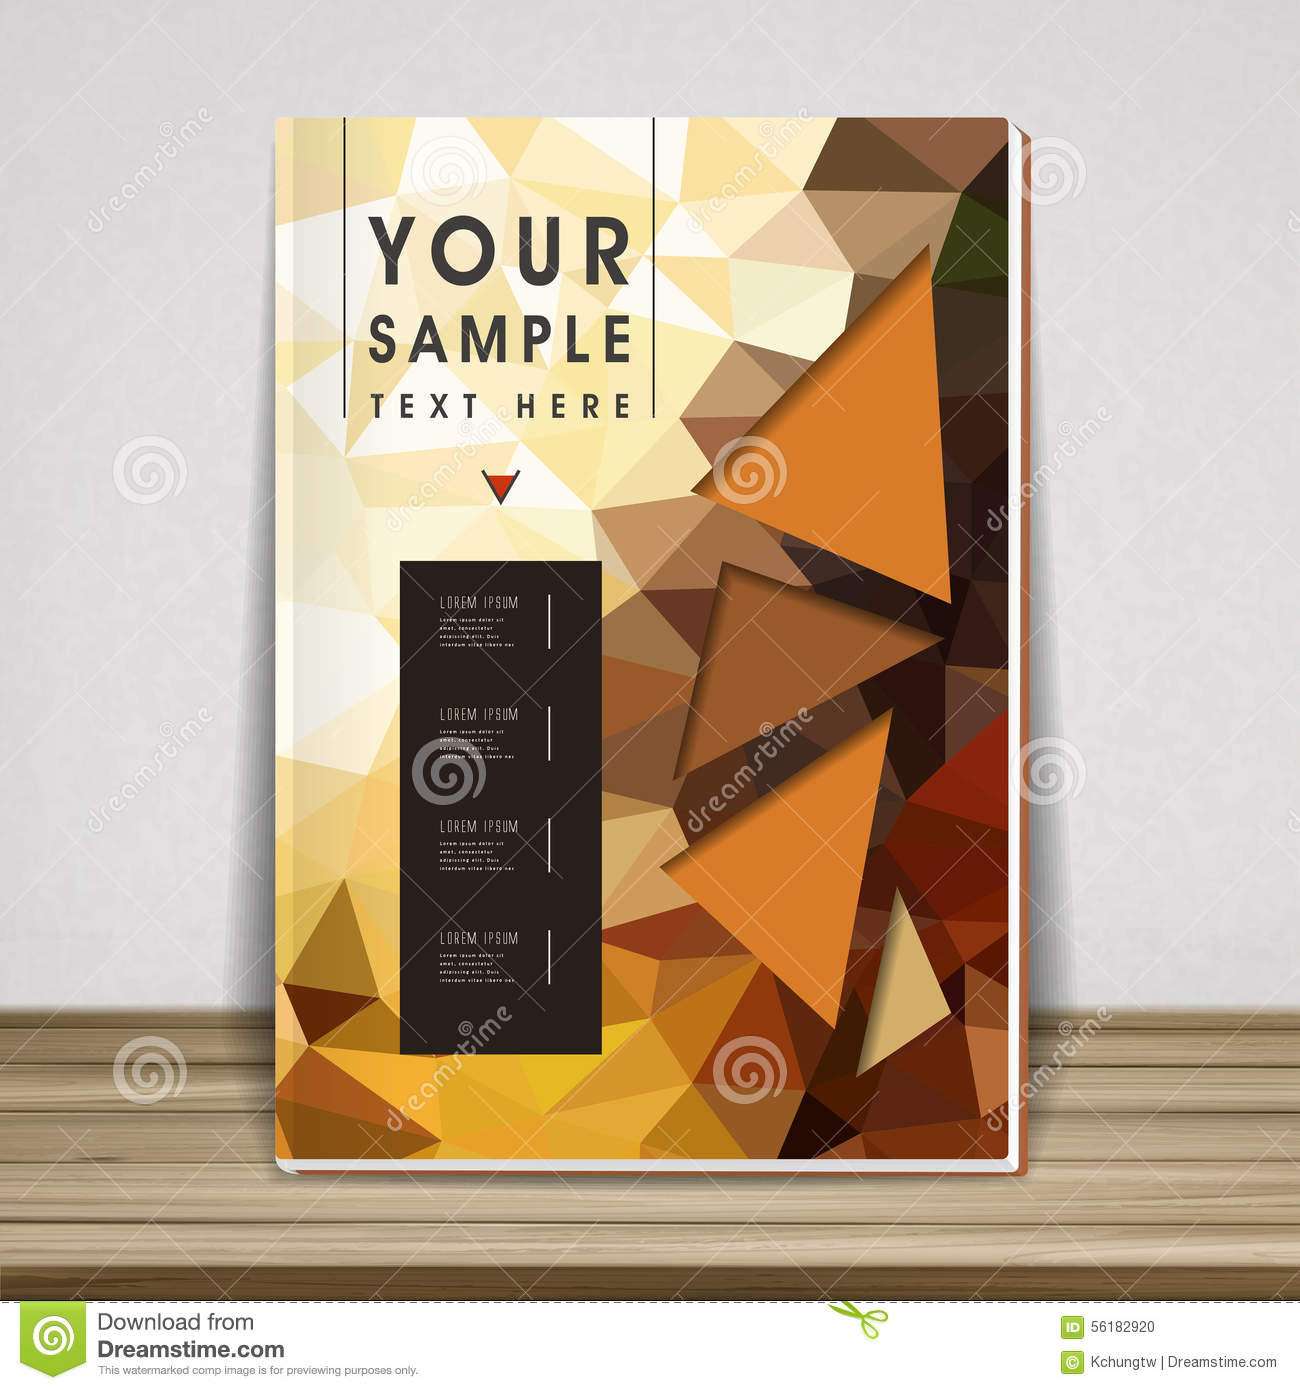 Book Cover Design Elements : Gorgeous book cover template design stock vector image